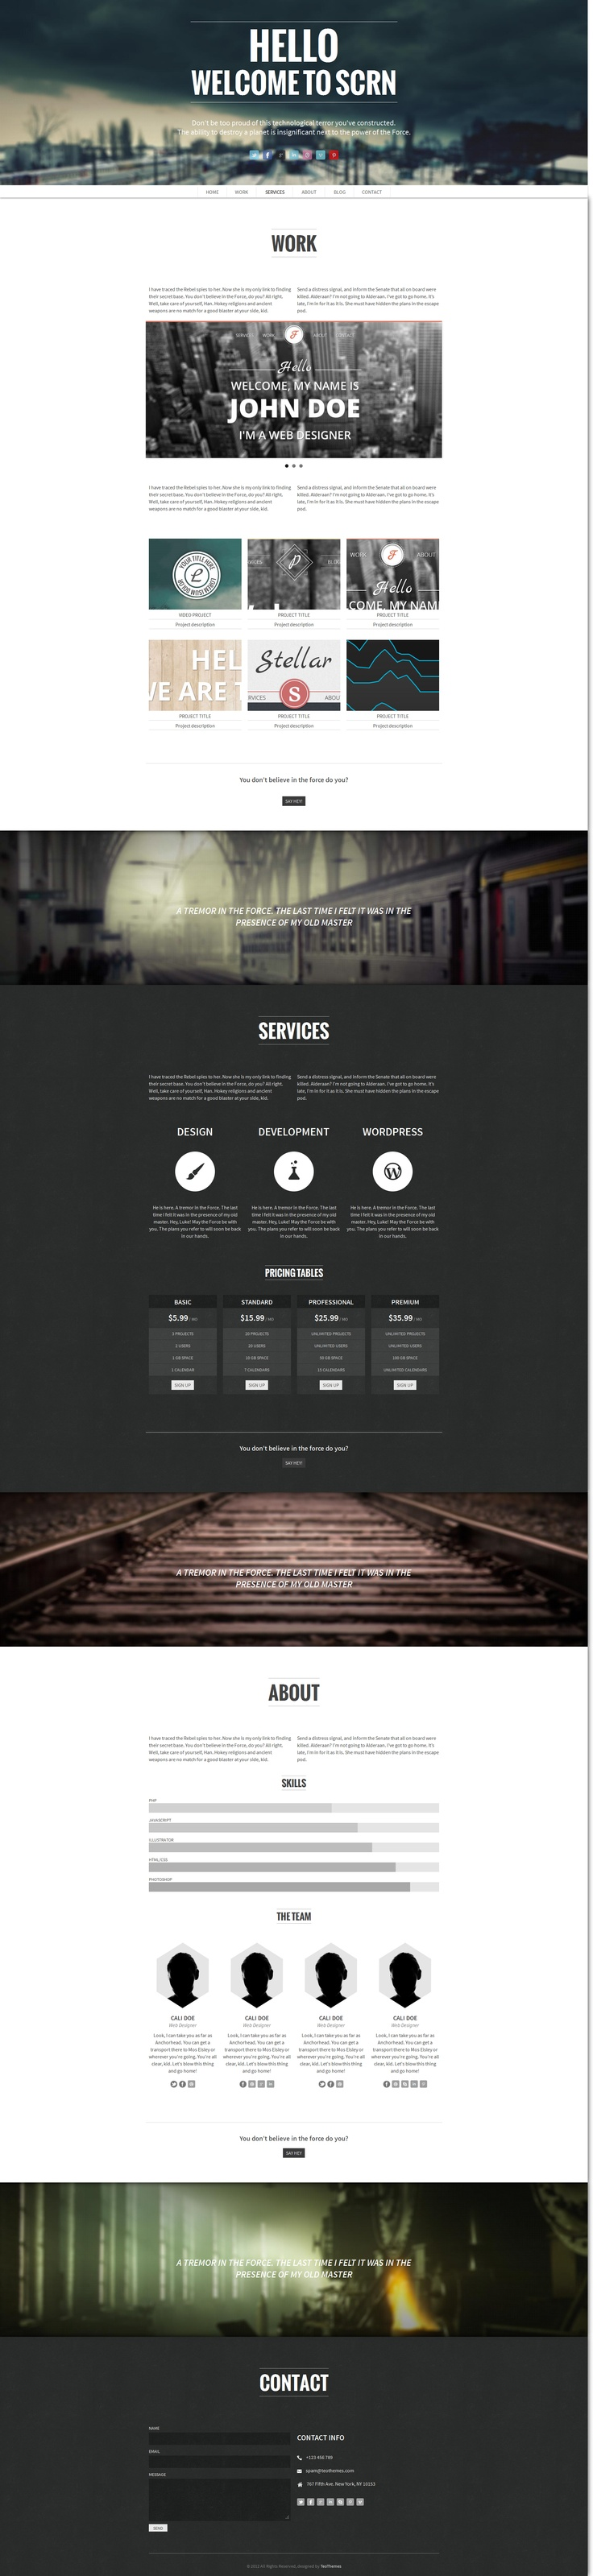 Webdesign | #webdesign #it #web #design #layout